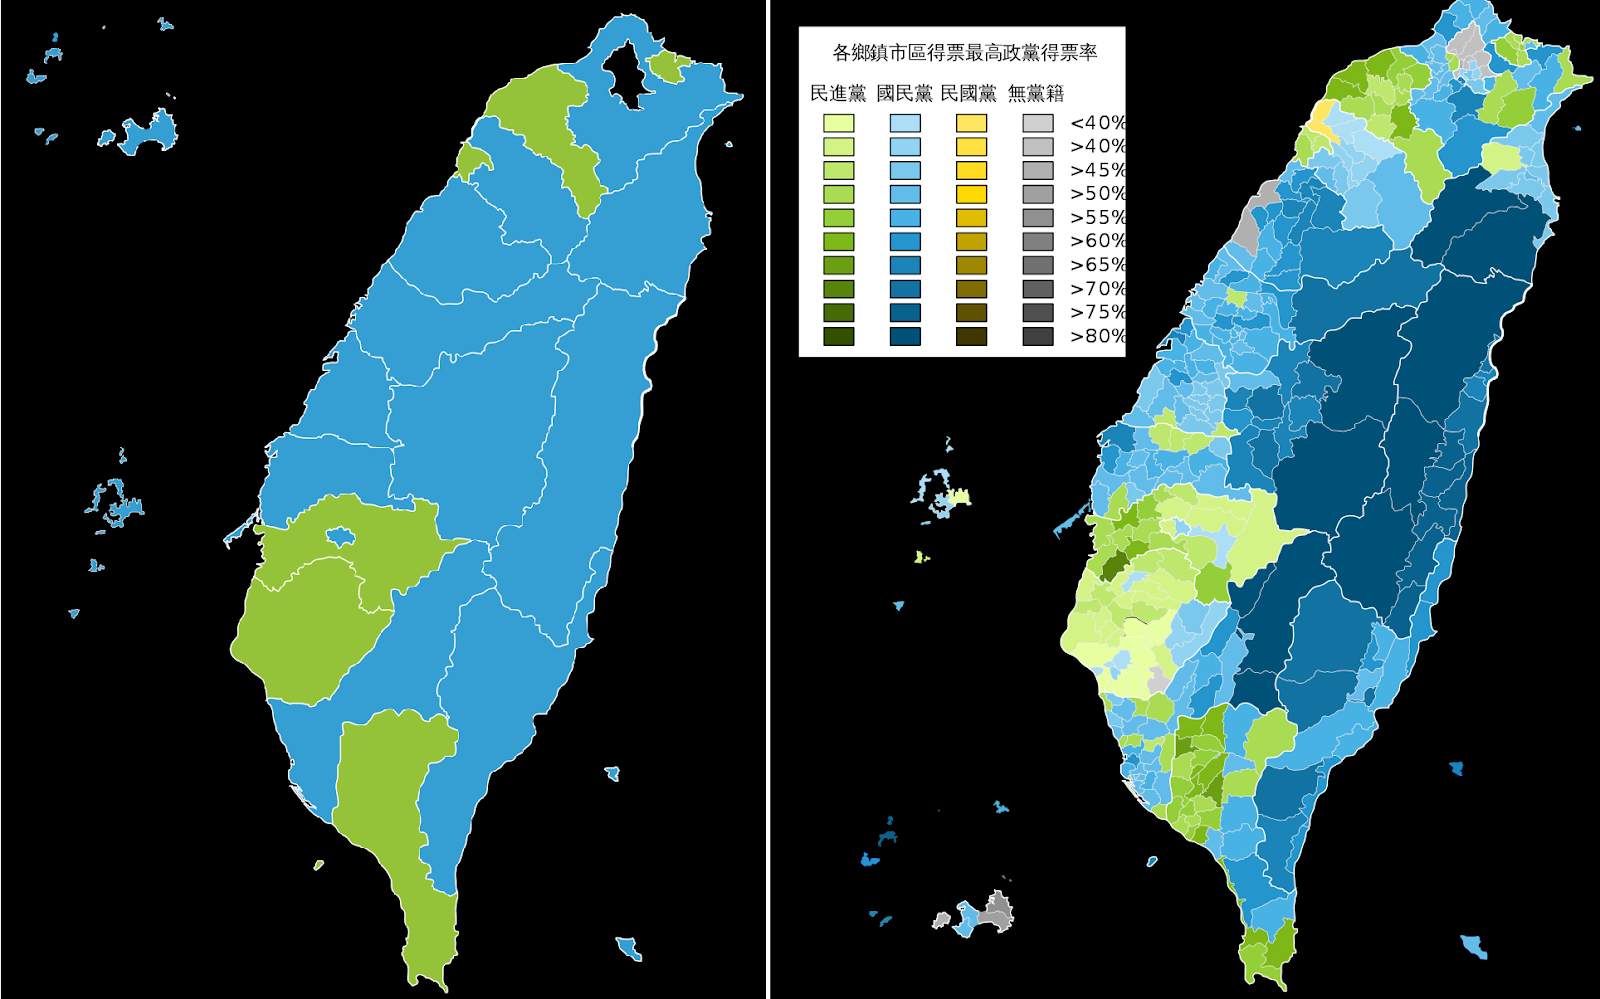 Electoral results for the second-level (special municipalities, provincial cities, counties) administrative divisions' mayors and magistrates broken down to the second- and third-level (districts, townships, cities) administrative divisions. Green indicates a majority of votes going to the DPP; blue indicates a majority of votes going to the KMT; yellow and grey indicate votes going to neither major party. Credit:  Wikimedia